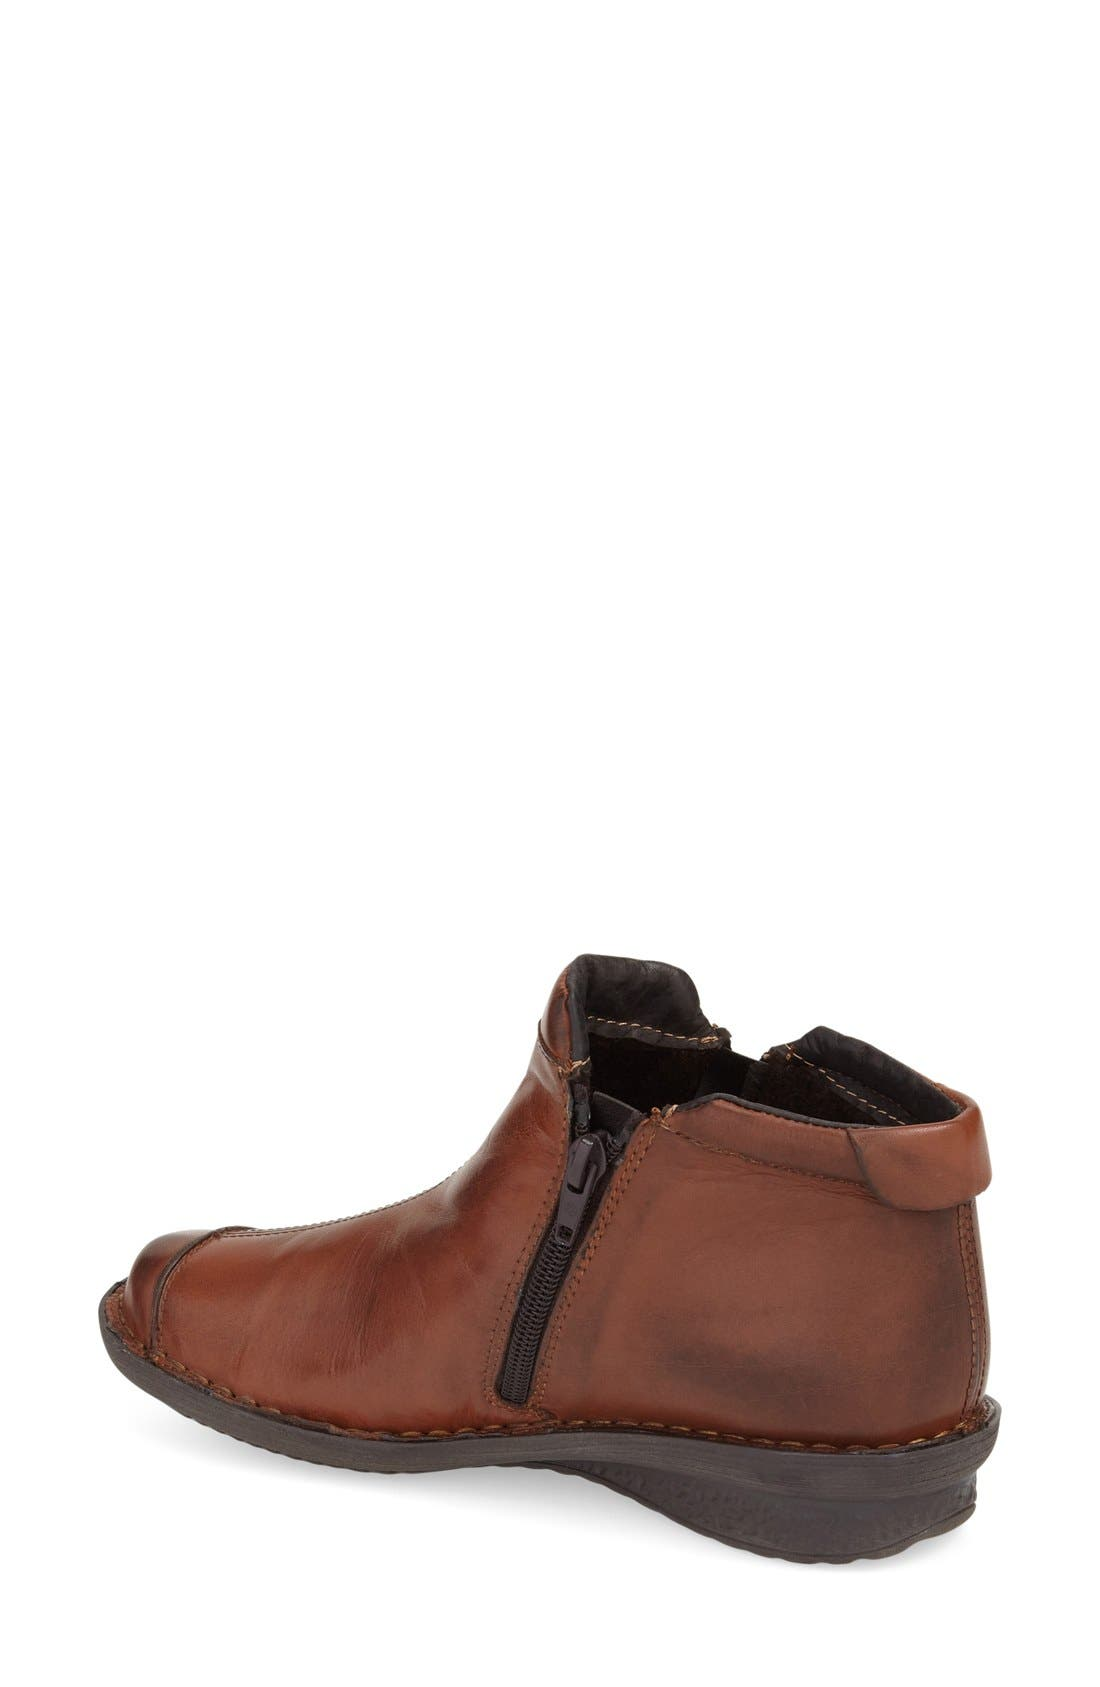 'Euro' Zip Bootie,                             Alternate thumbnail 3, color,                             LUGGAGE LEATHER